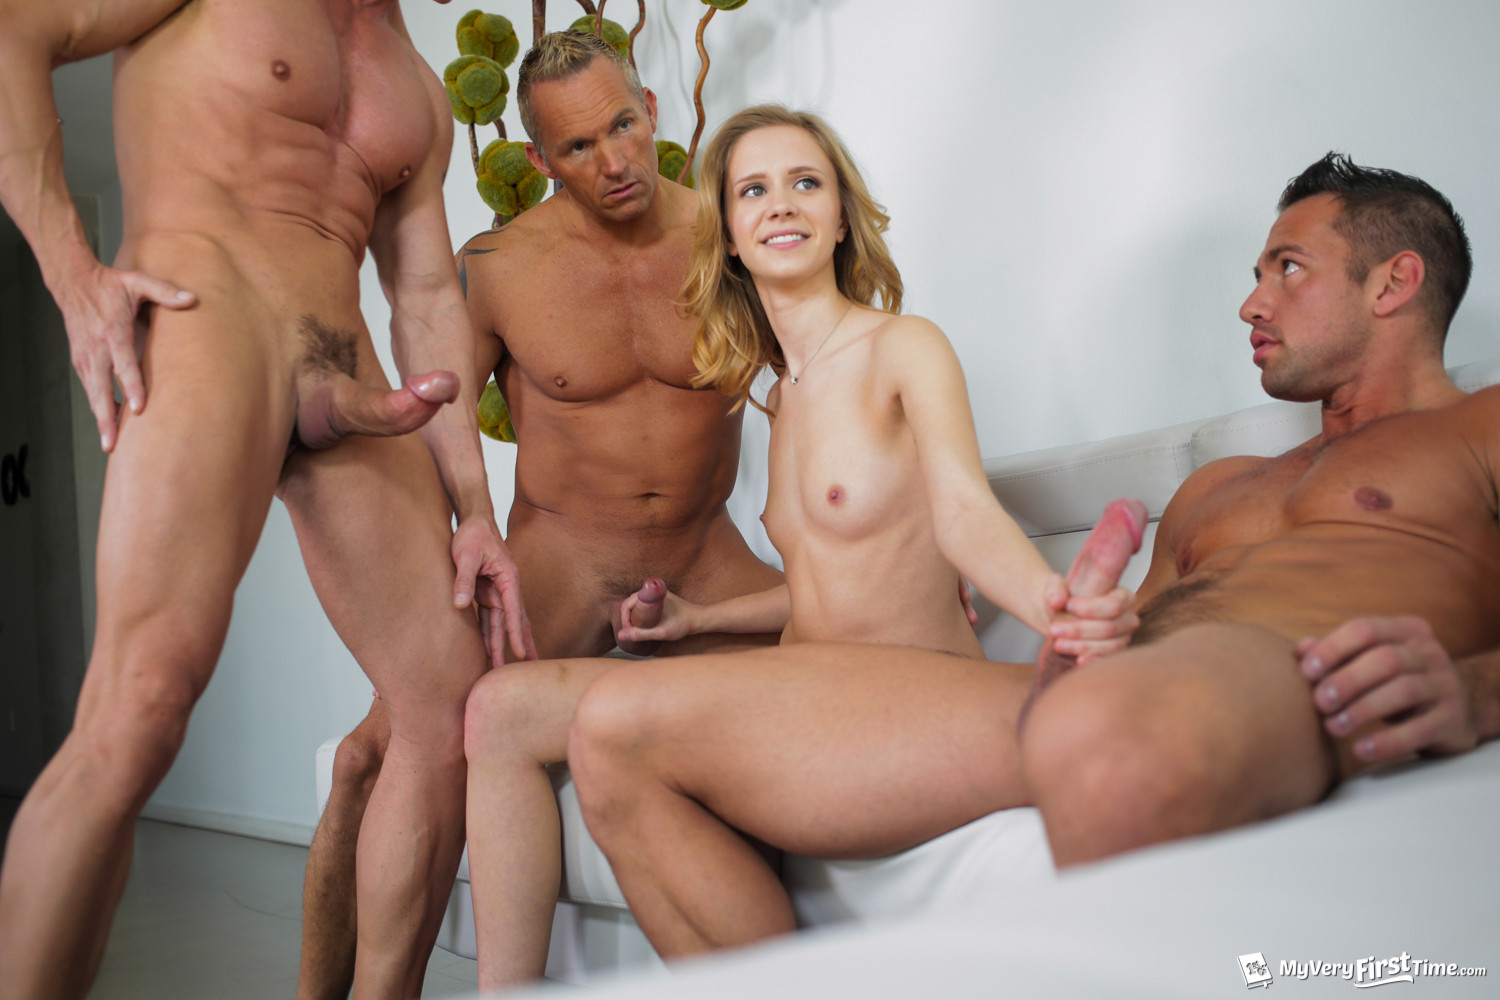 Milf and two guys porn